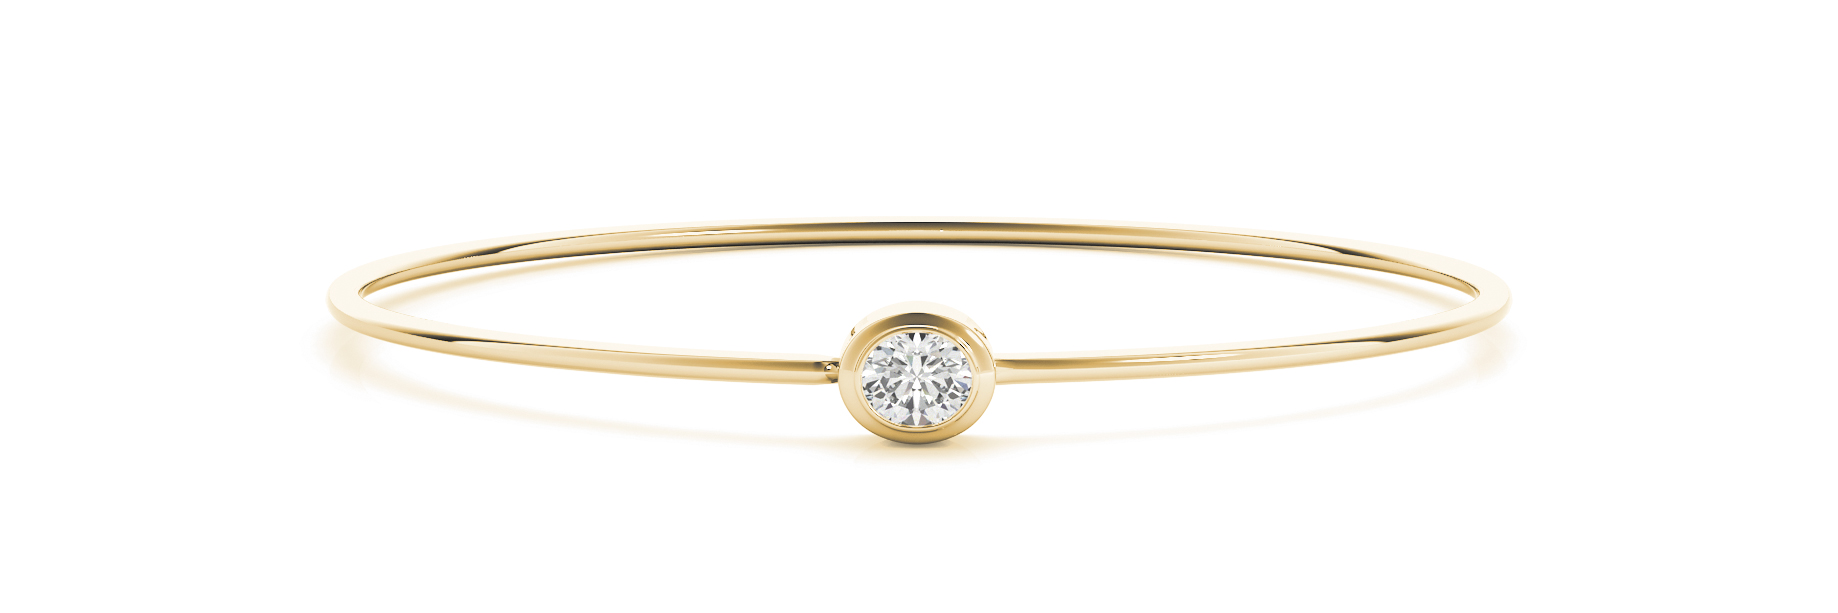 Oval Diamond Solitaire Bezel Bangle Yellow Gold